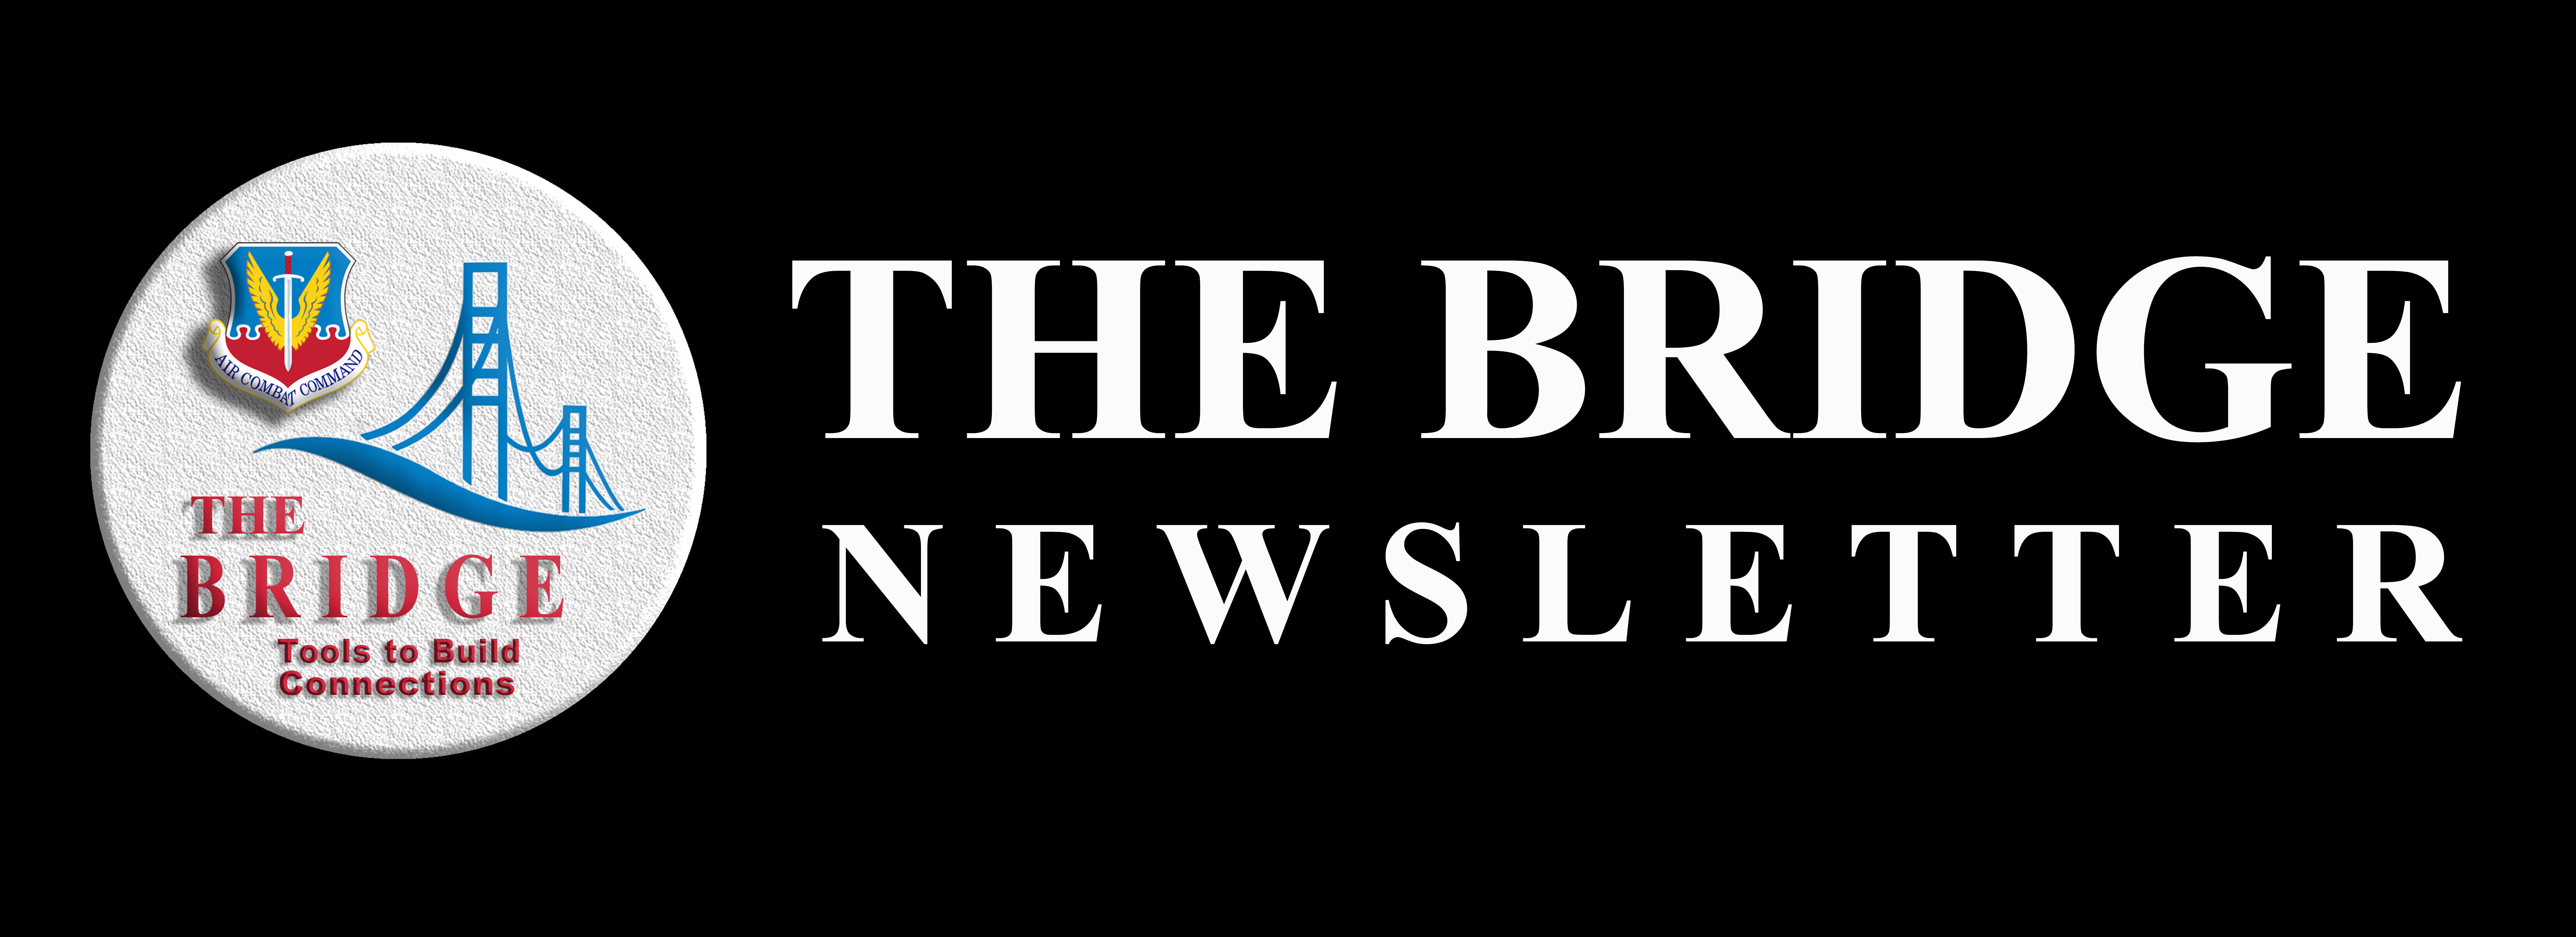 Link to The Bridge Newsletter